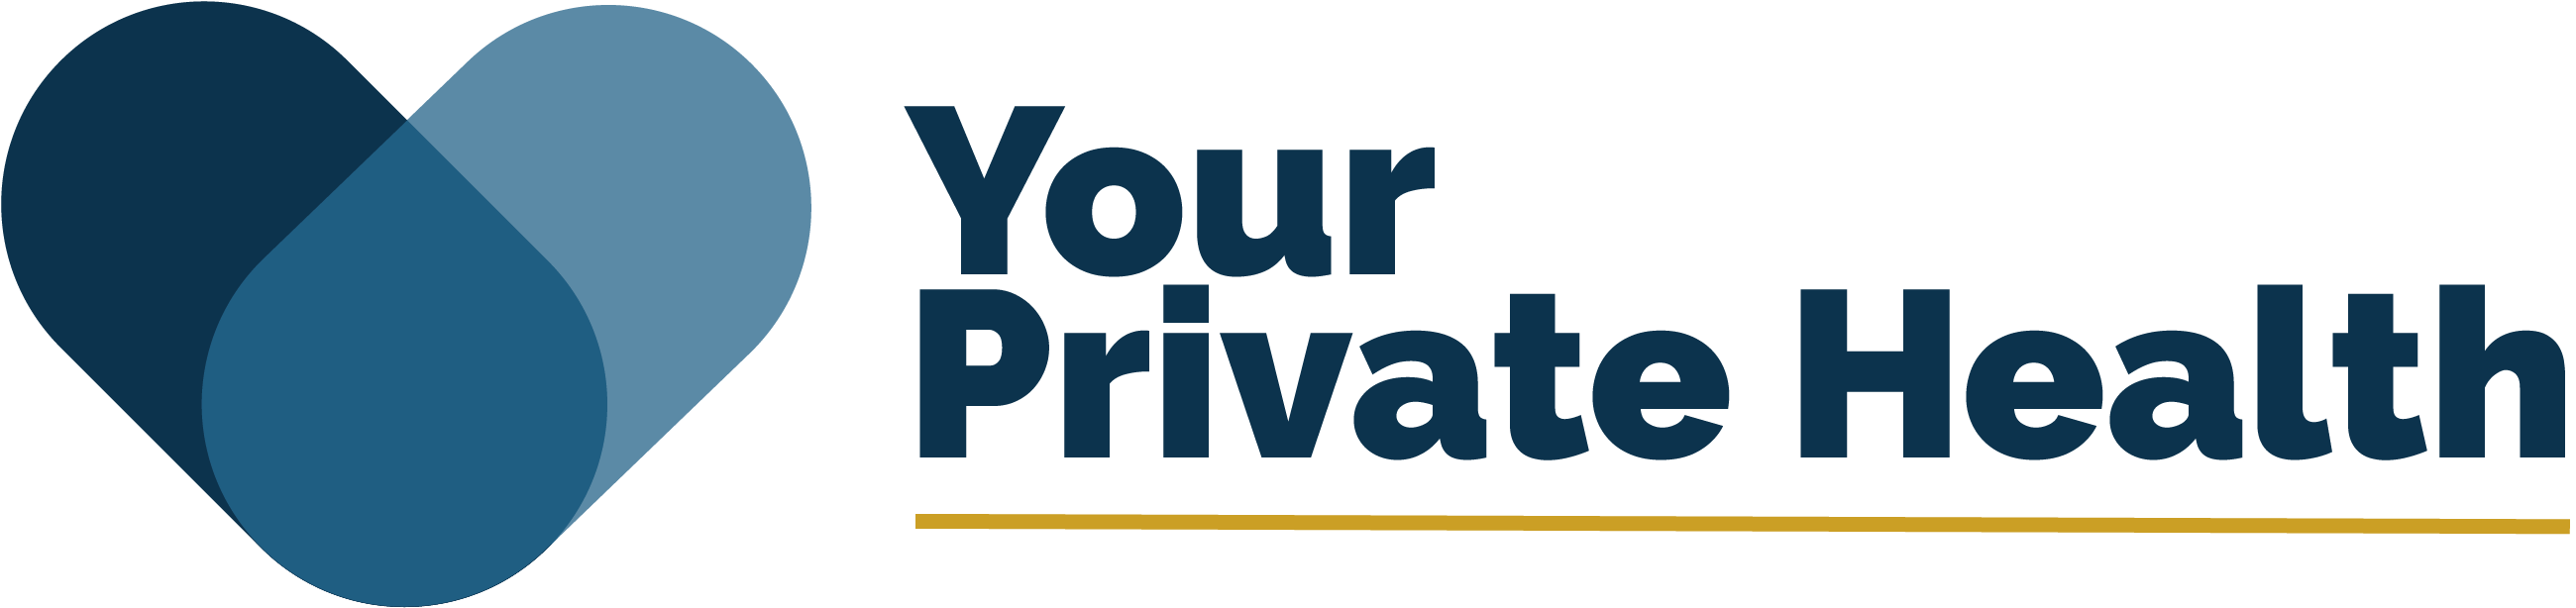 Your Private Health